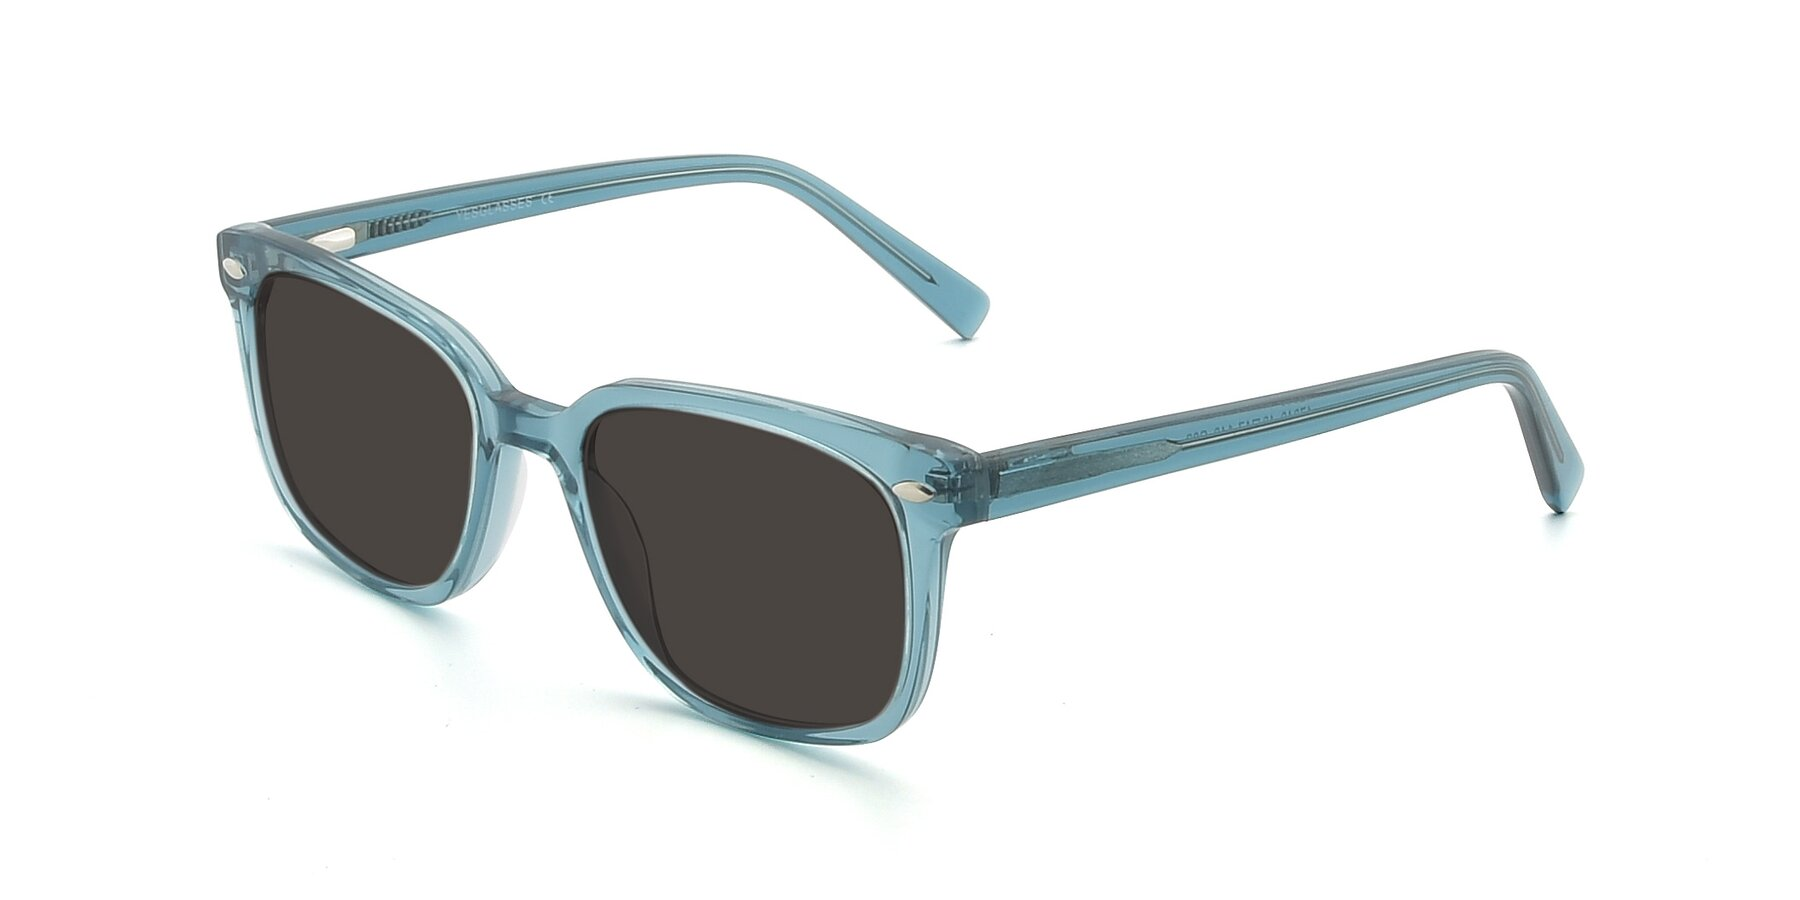 Angle of 17349 in Transparent Cyan with Gray Tinted Lenses